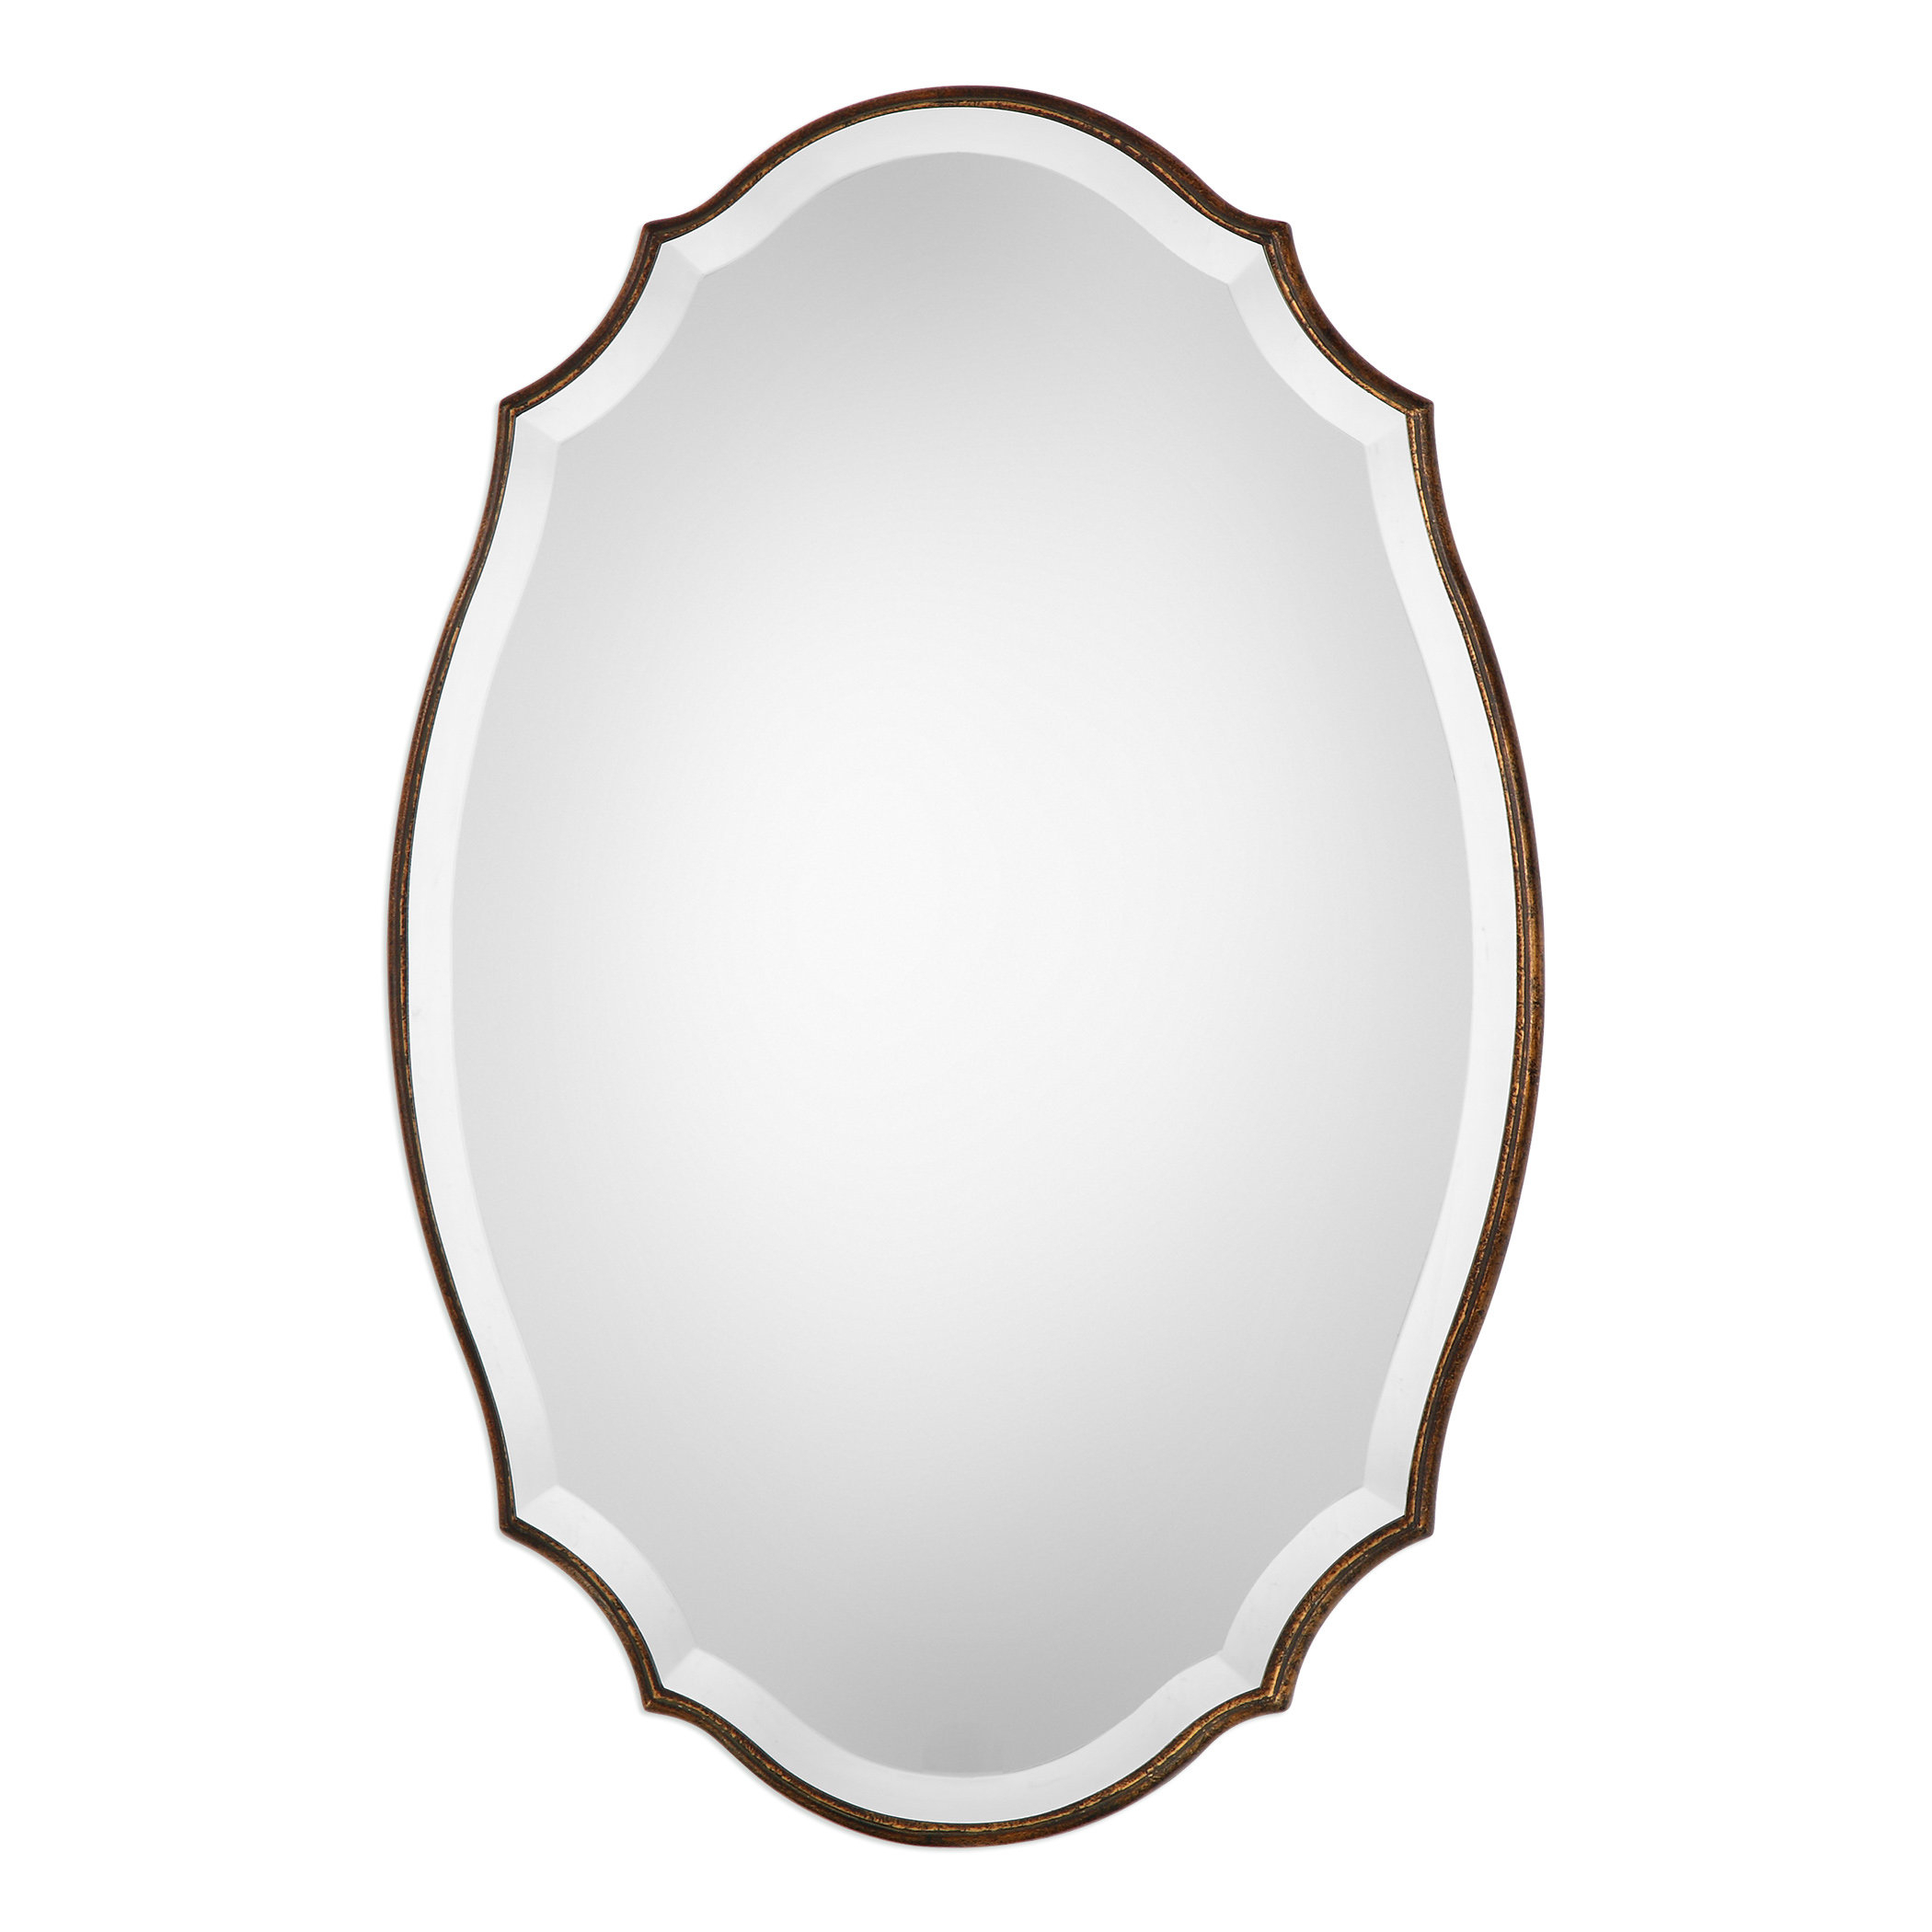 Modern & Contemporary Beveled Accent Mirror Intended For Guidinha Modern & Contemporary Accent Mirrors (View 21 of 30)